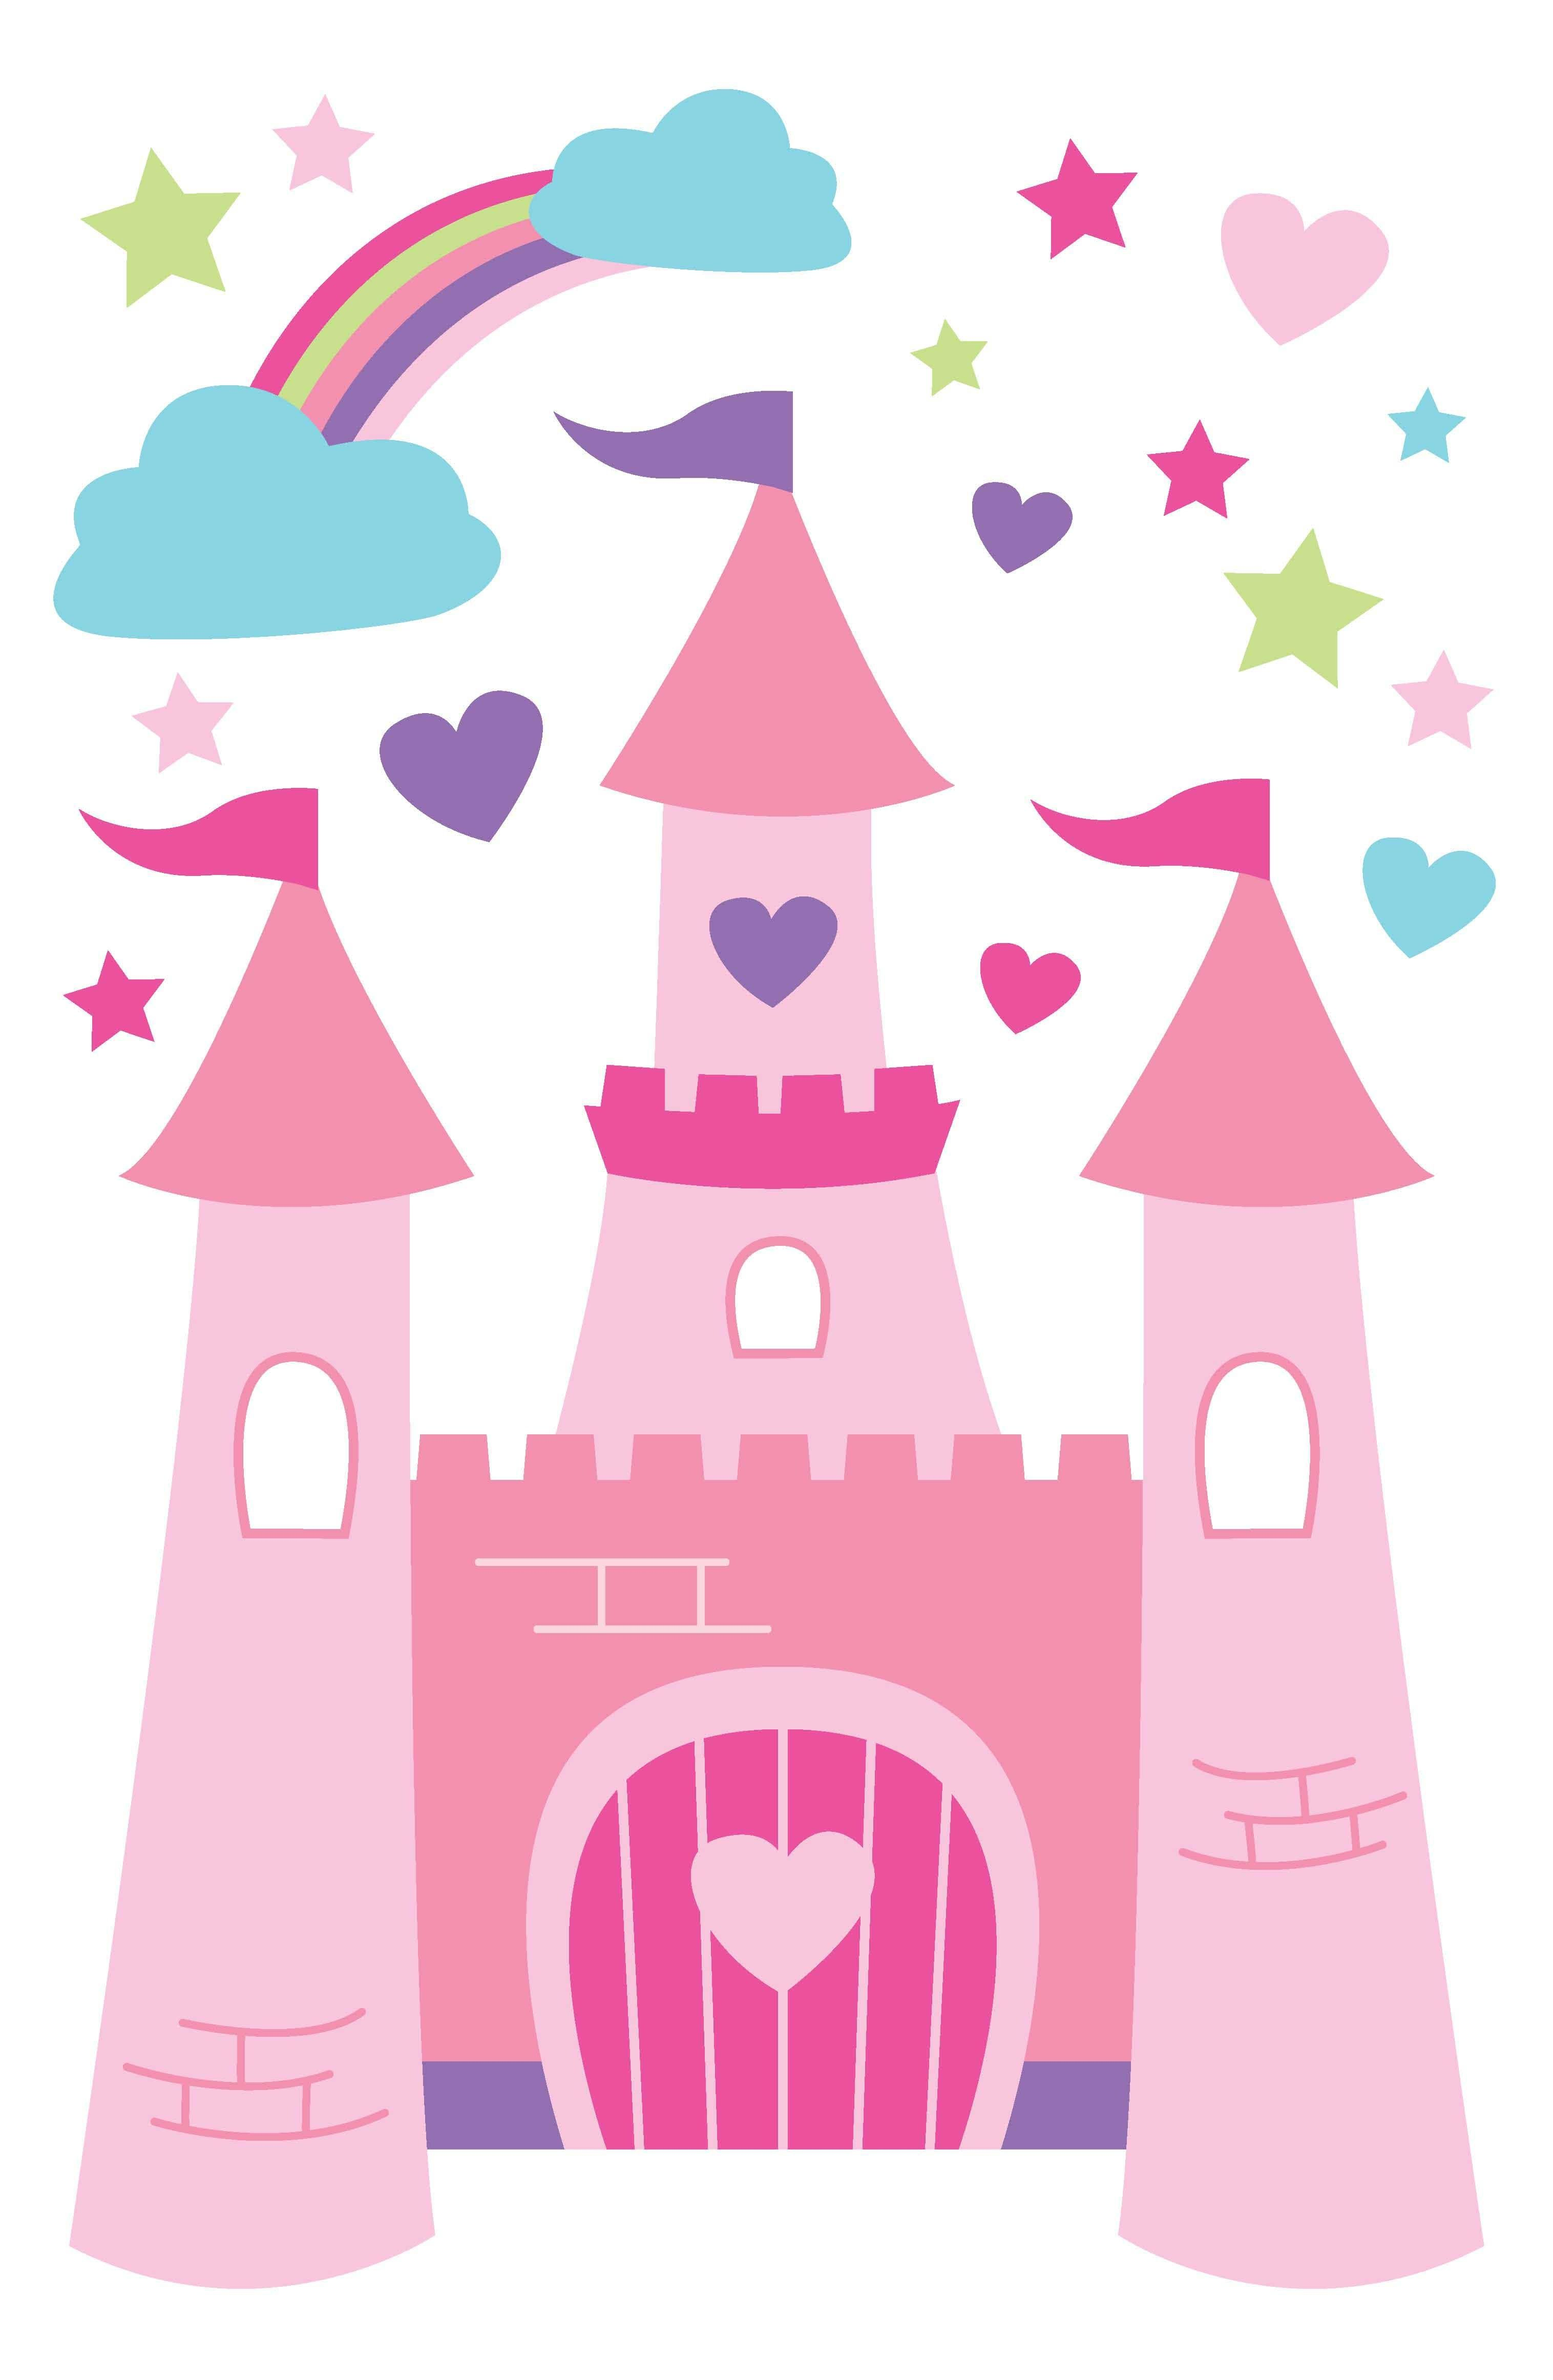 Castle clip art for DIY projects.